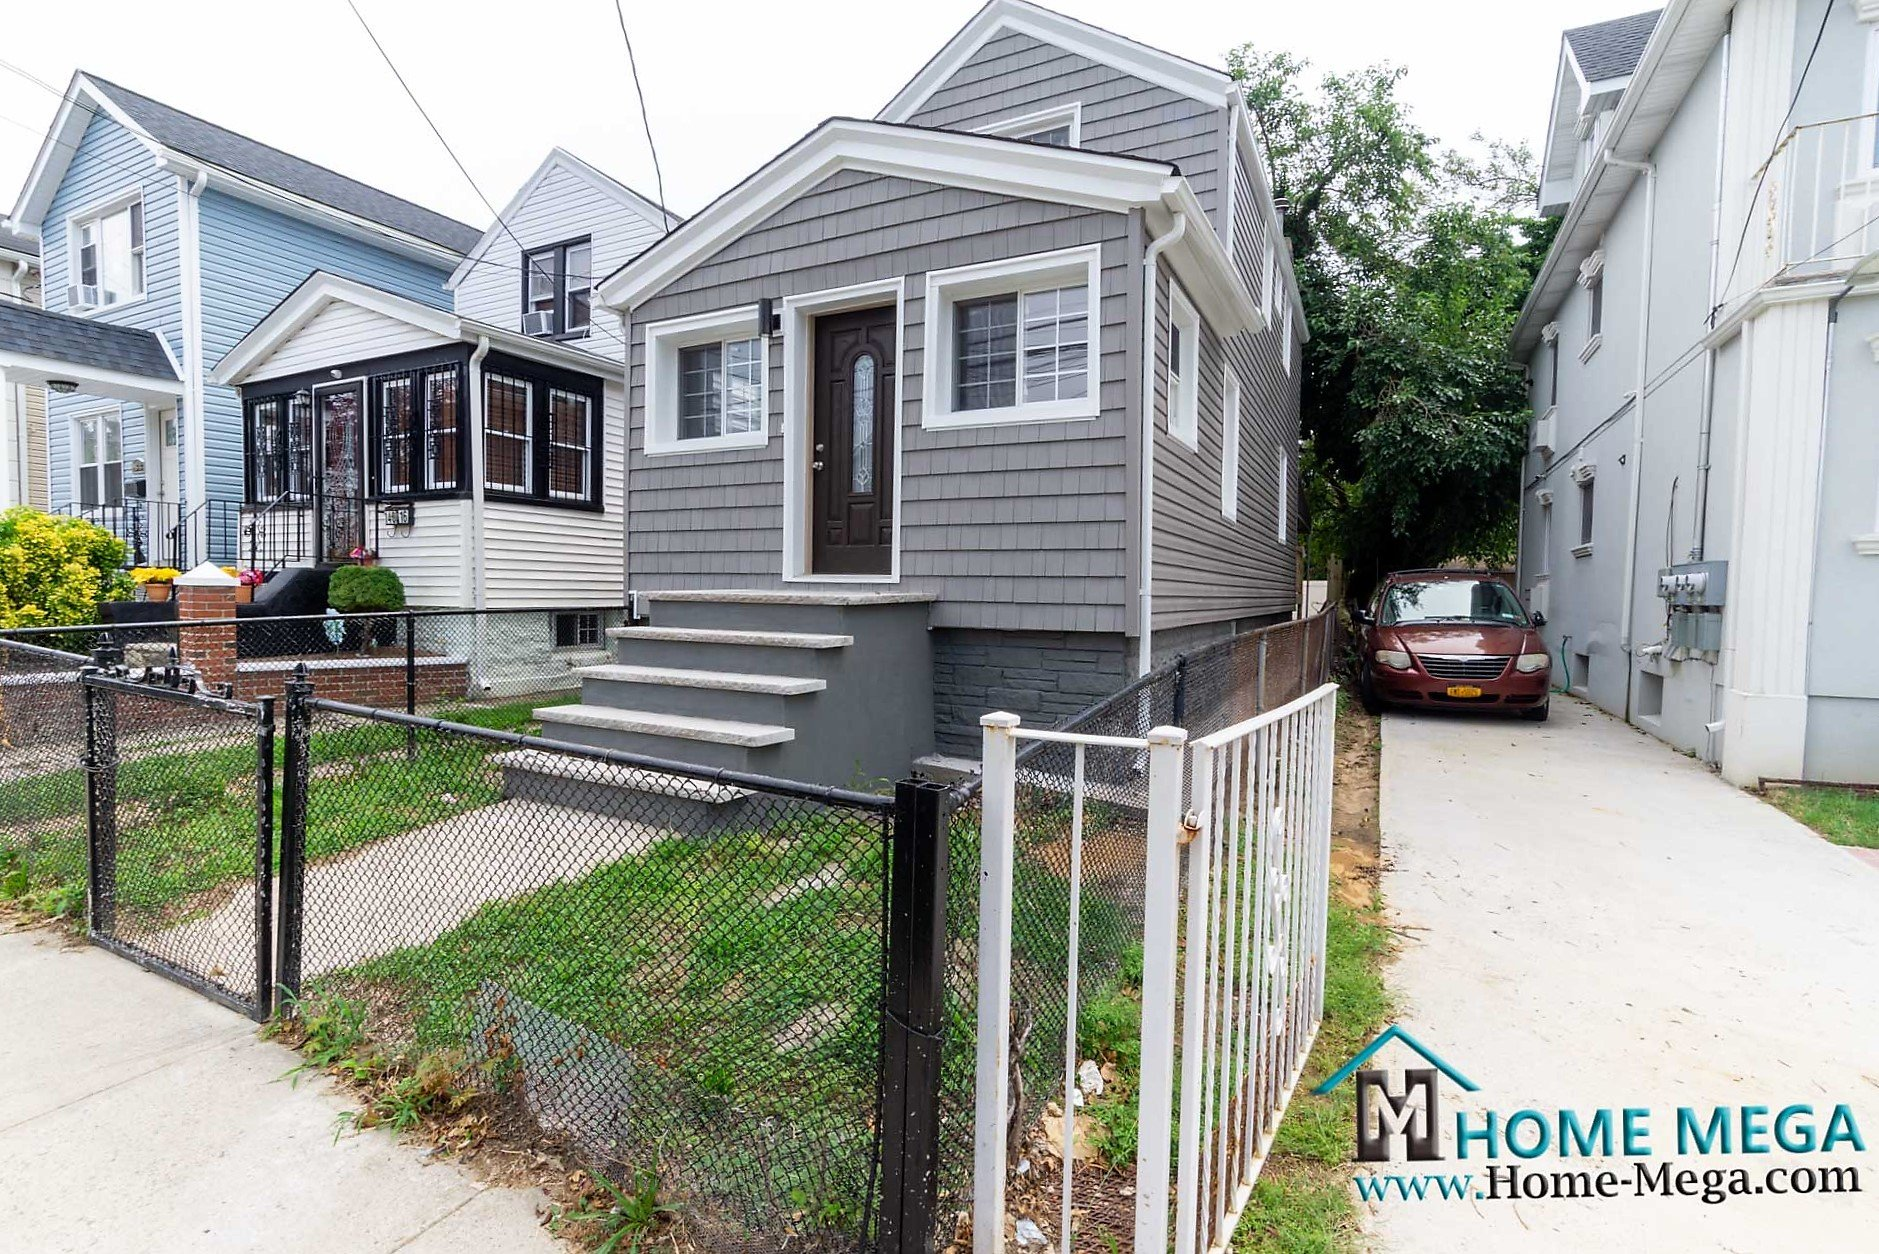 One Family For Sale in South Ozone Park, Queens NY 11436. Beautifully Remodeled - Beautiful DEAL!